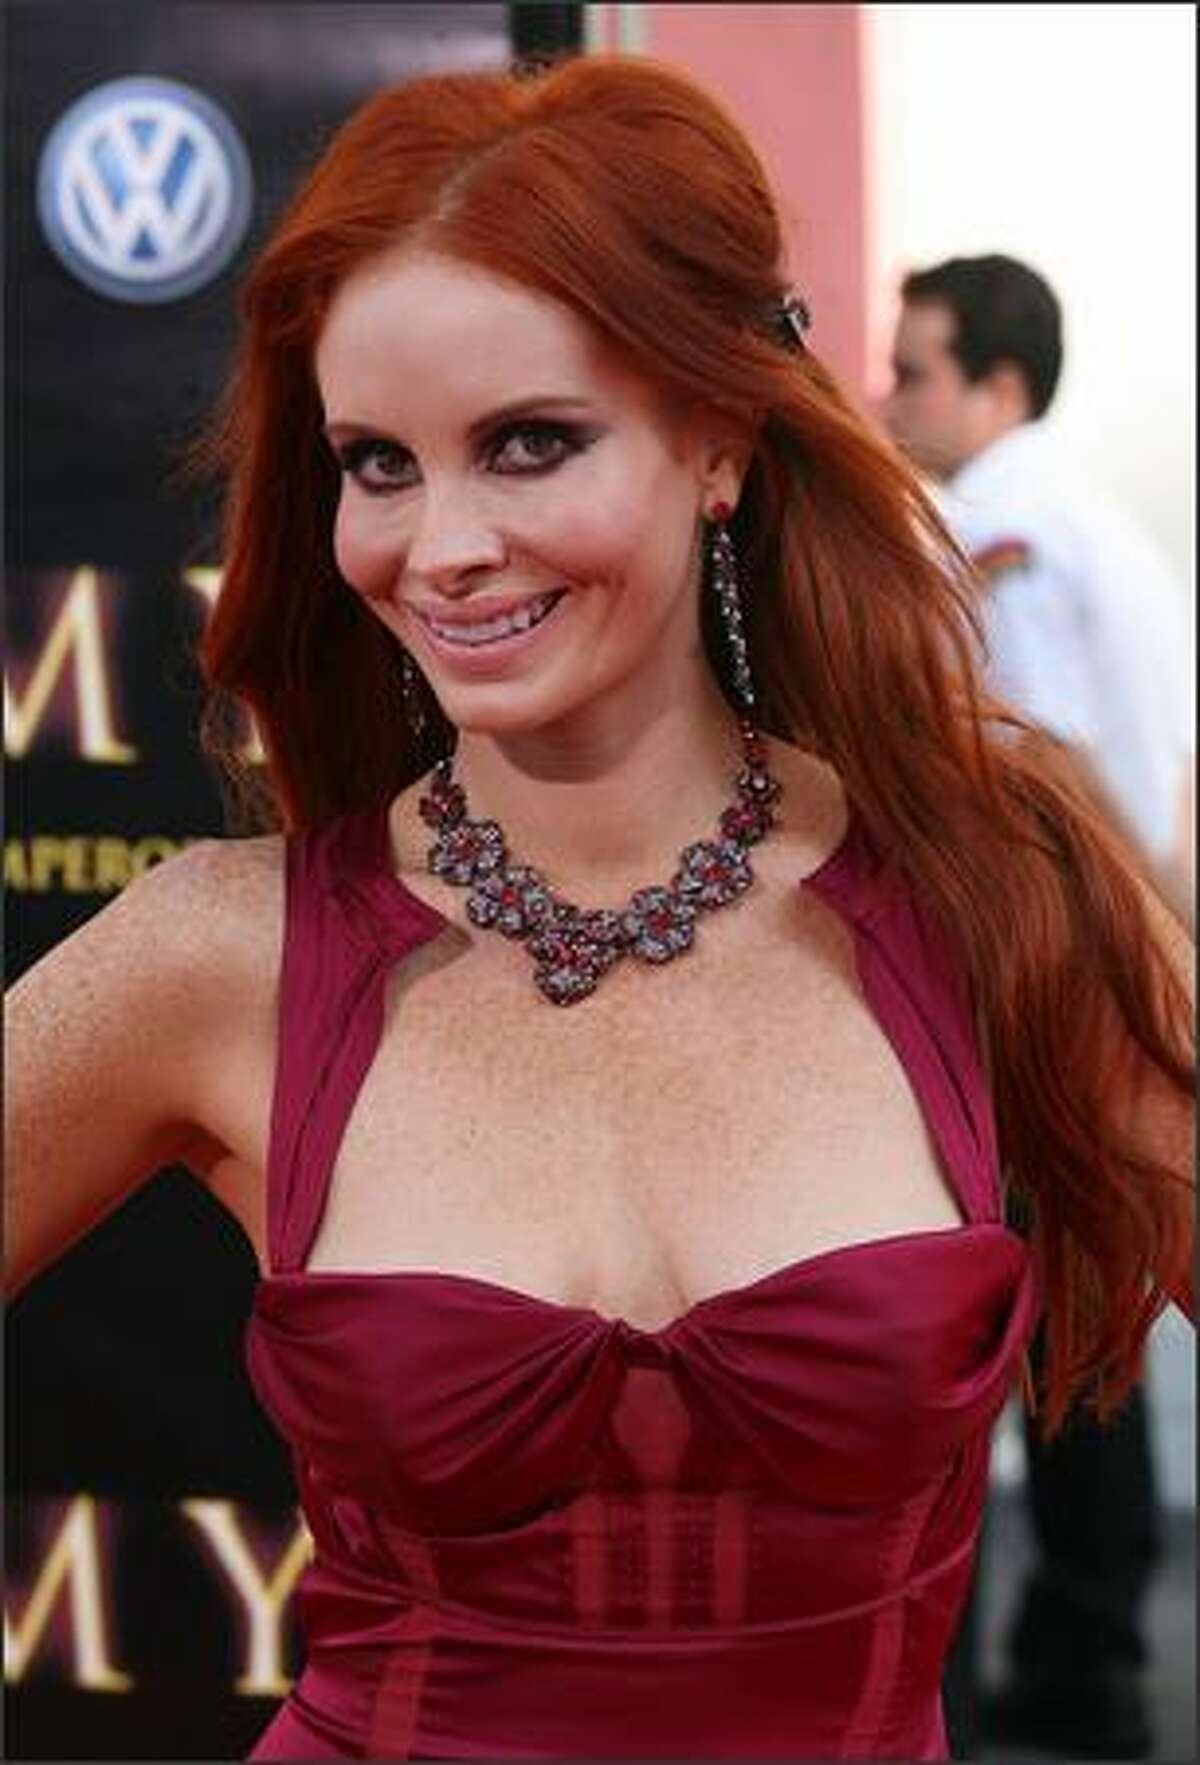 Actress Phoebe Price attends the premiere of Universal Picture's